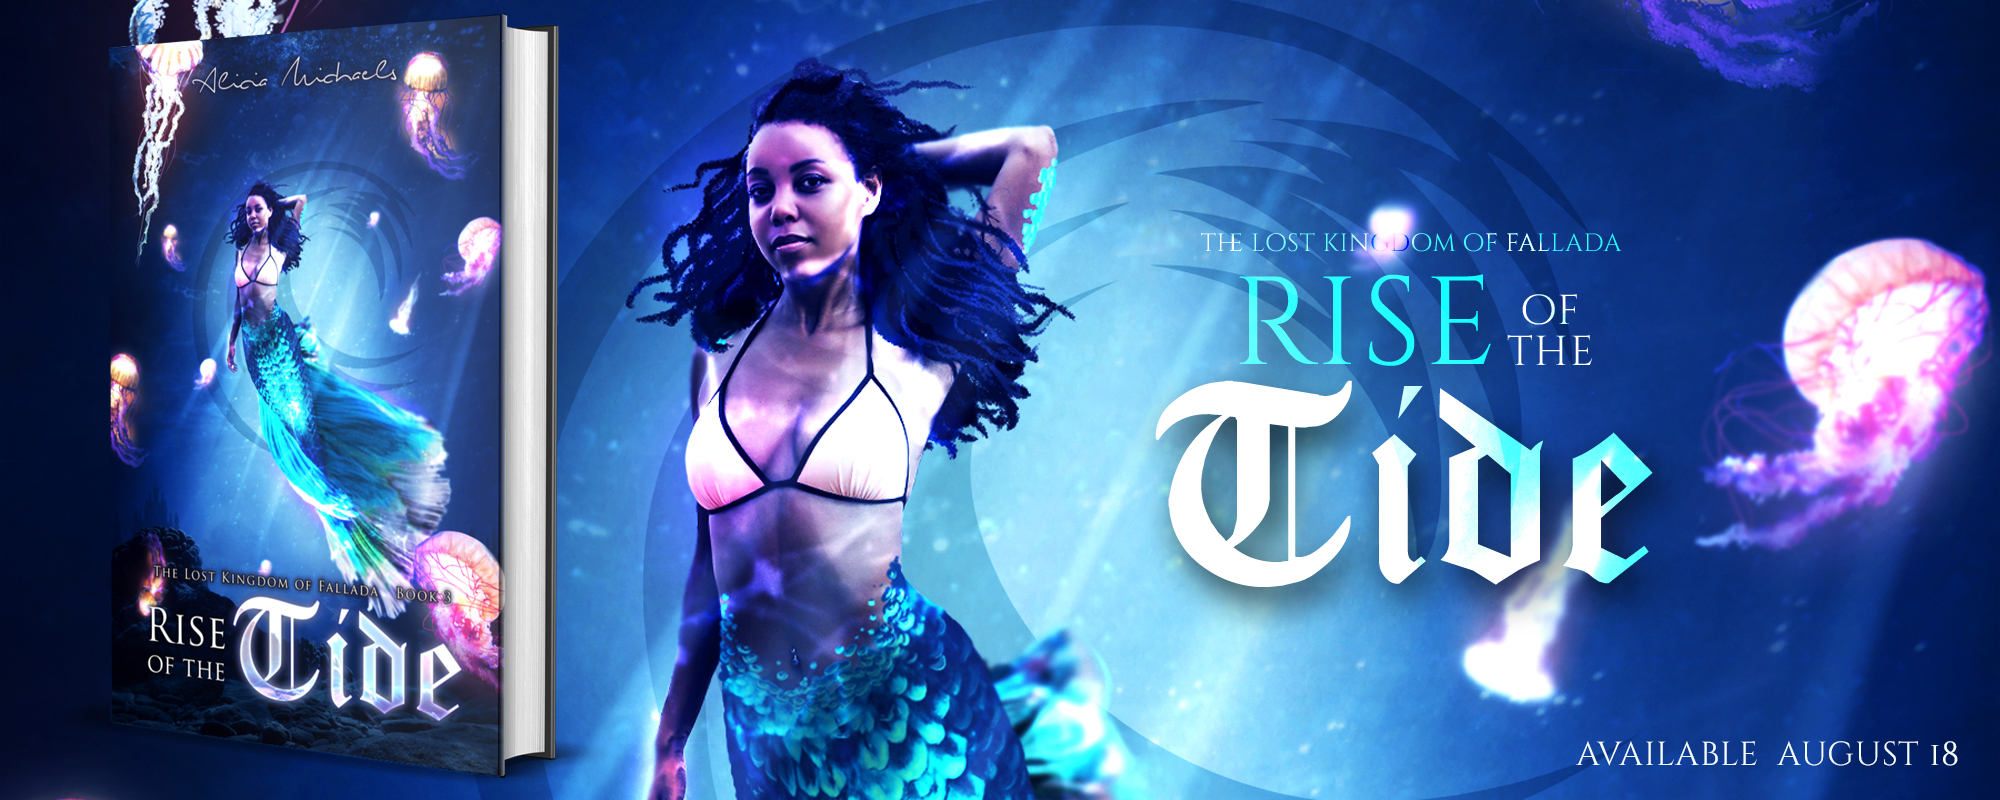 Rise of the Tide by Alicia Michaels, coming soon